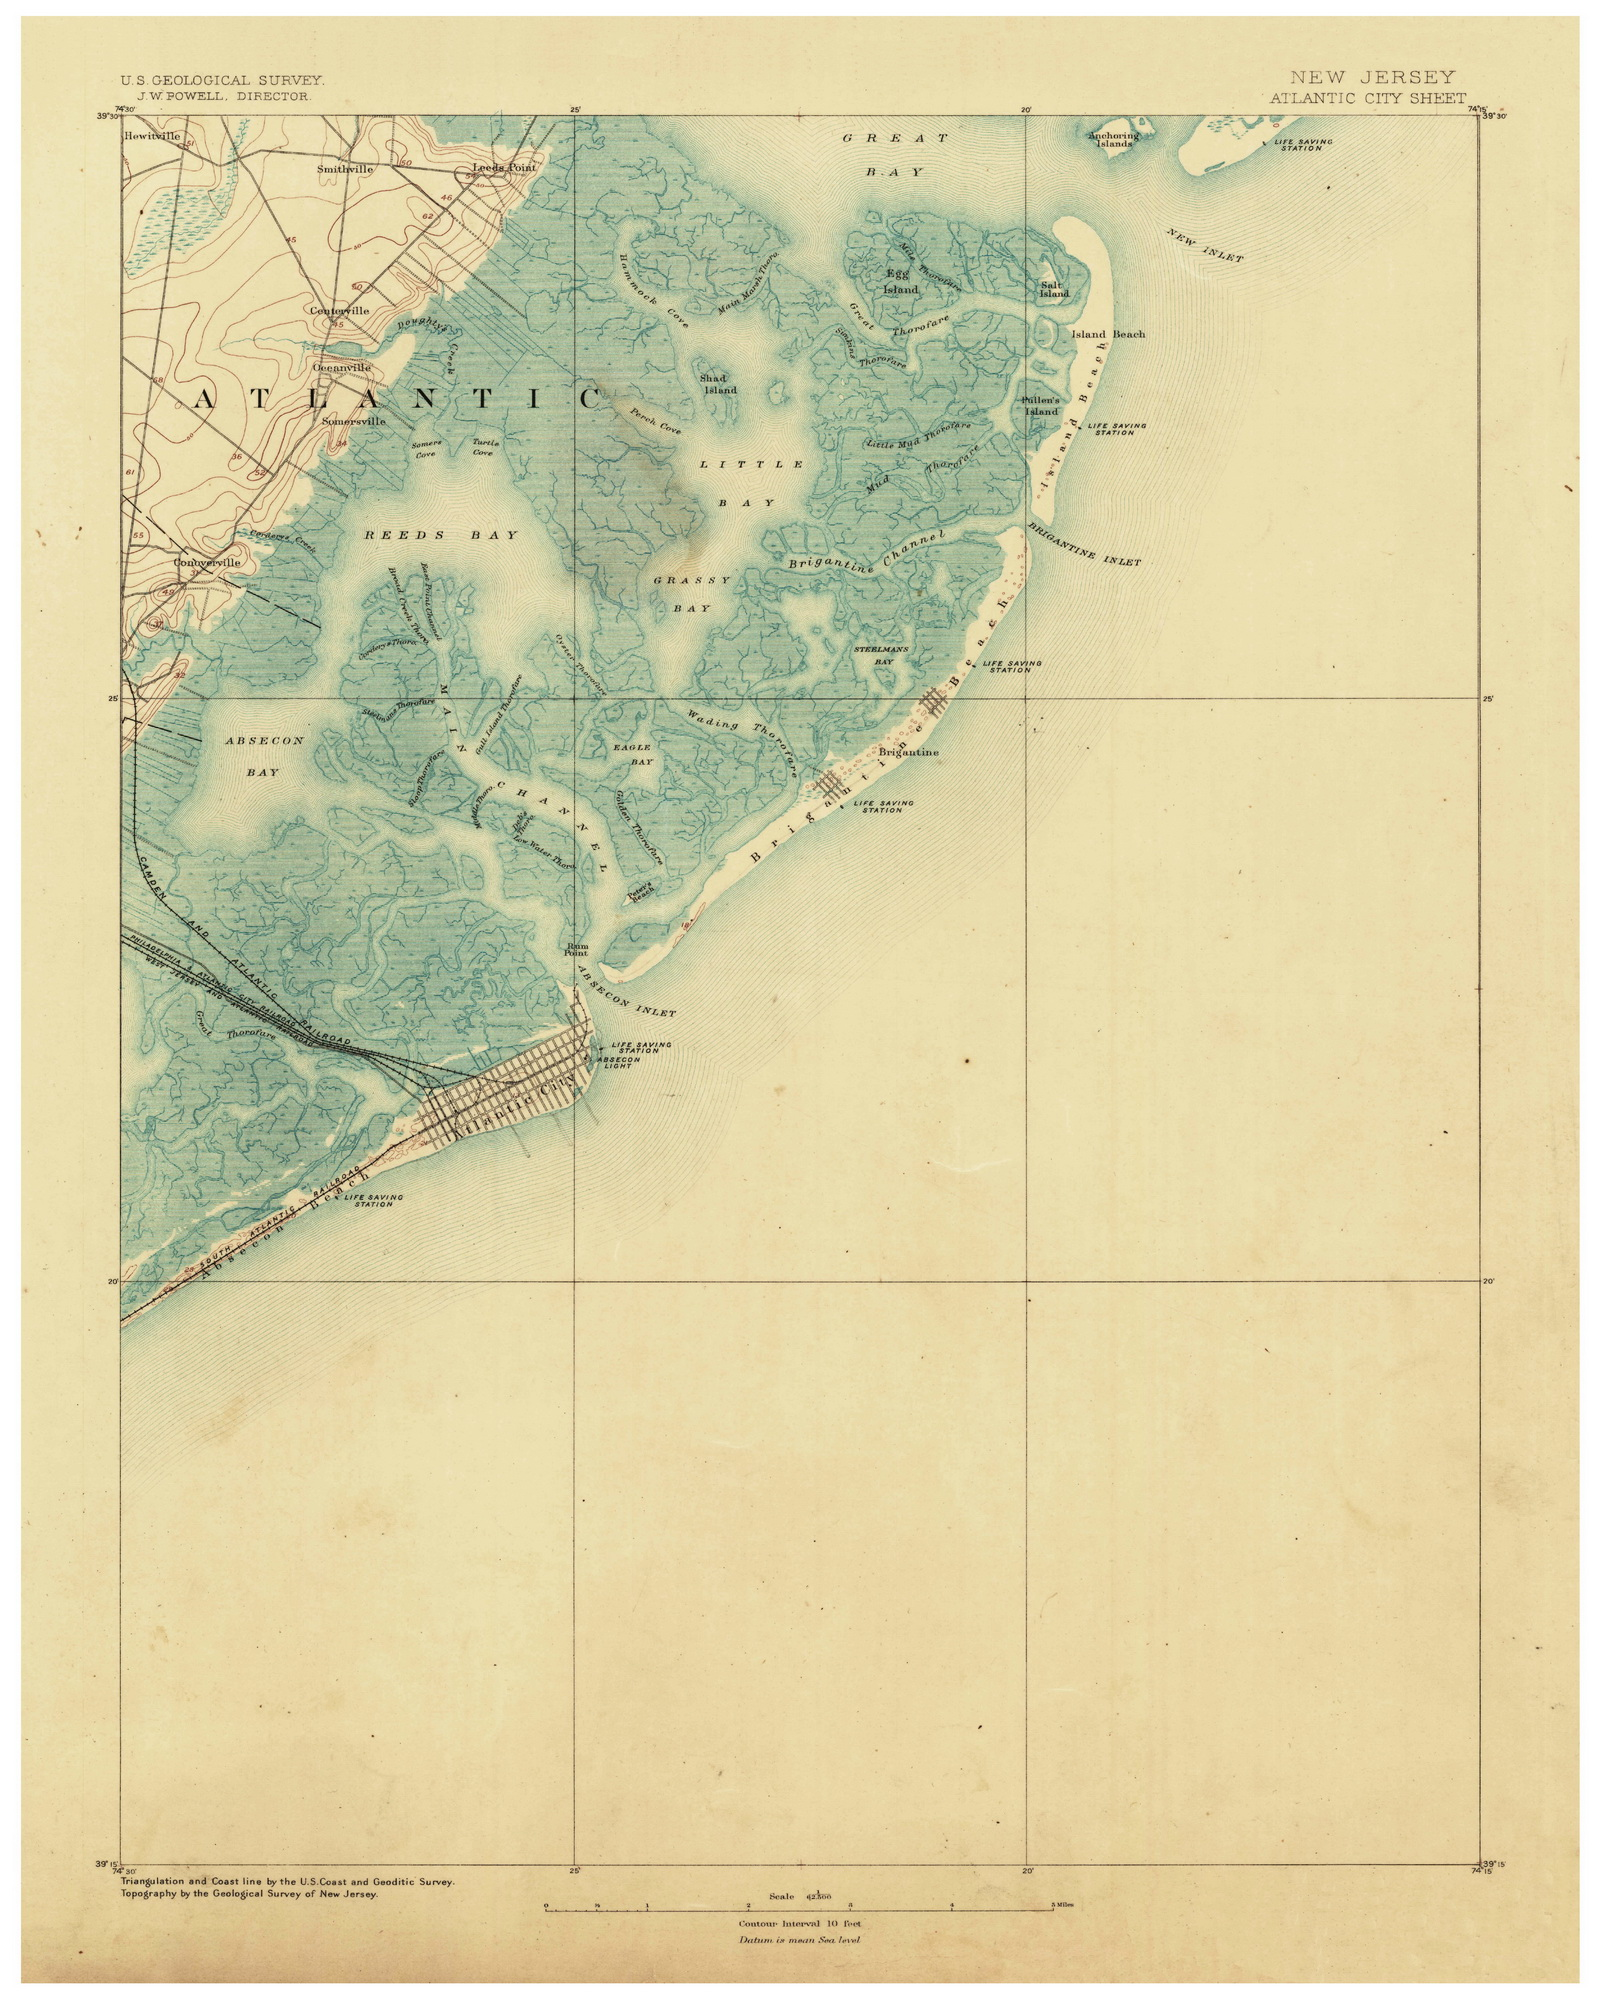 Topsail nc tide chart choice image chart design ideas tide chart beaufort nc images free any chart examples nj tides chart gallery free any chart geenschuldenfo Gallery